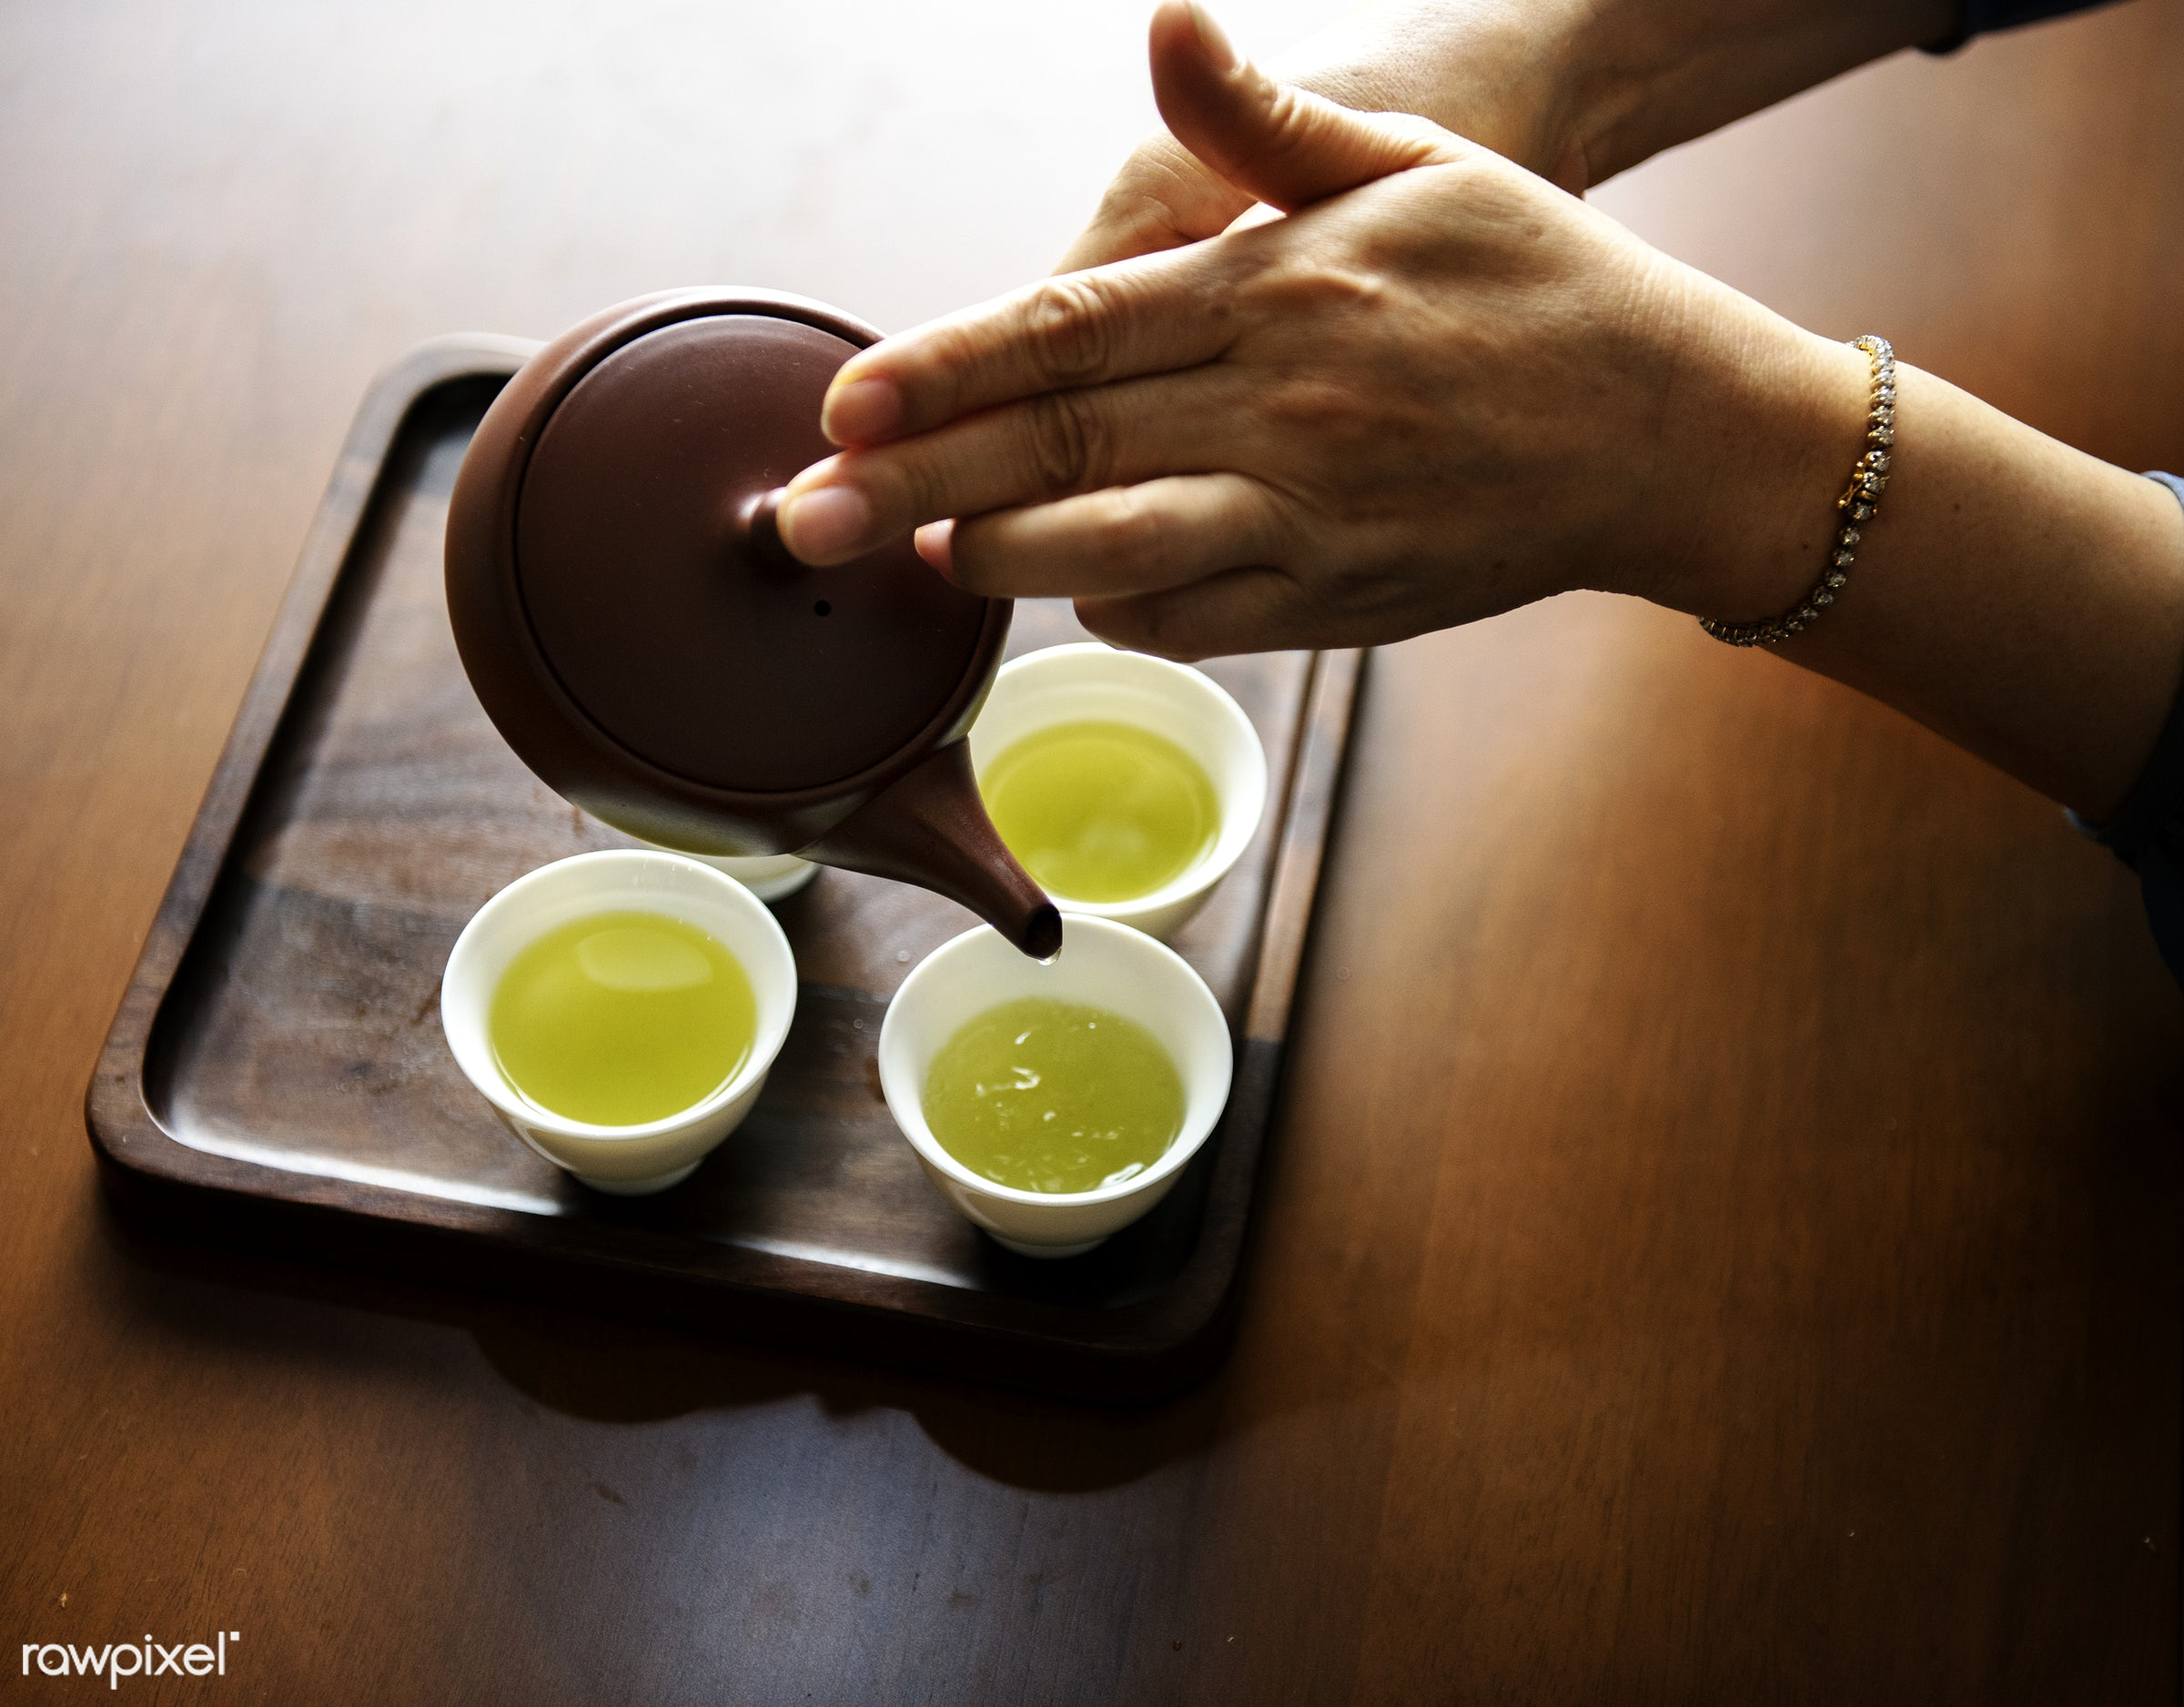 Pouring tea - asia, asian, cc0, ceremony, creative common 0, creative commons 0, culture, drinking, formal, green tea, home...